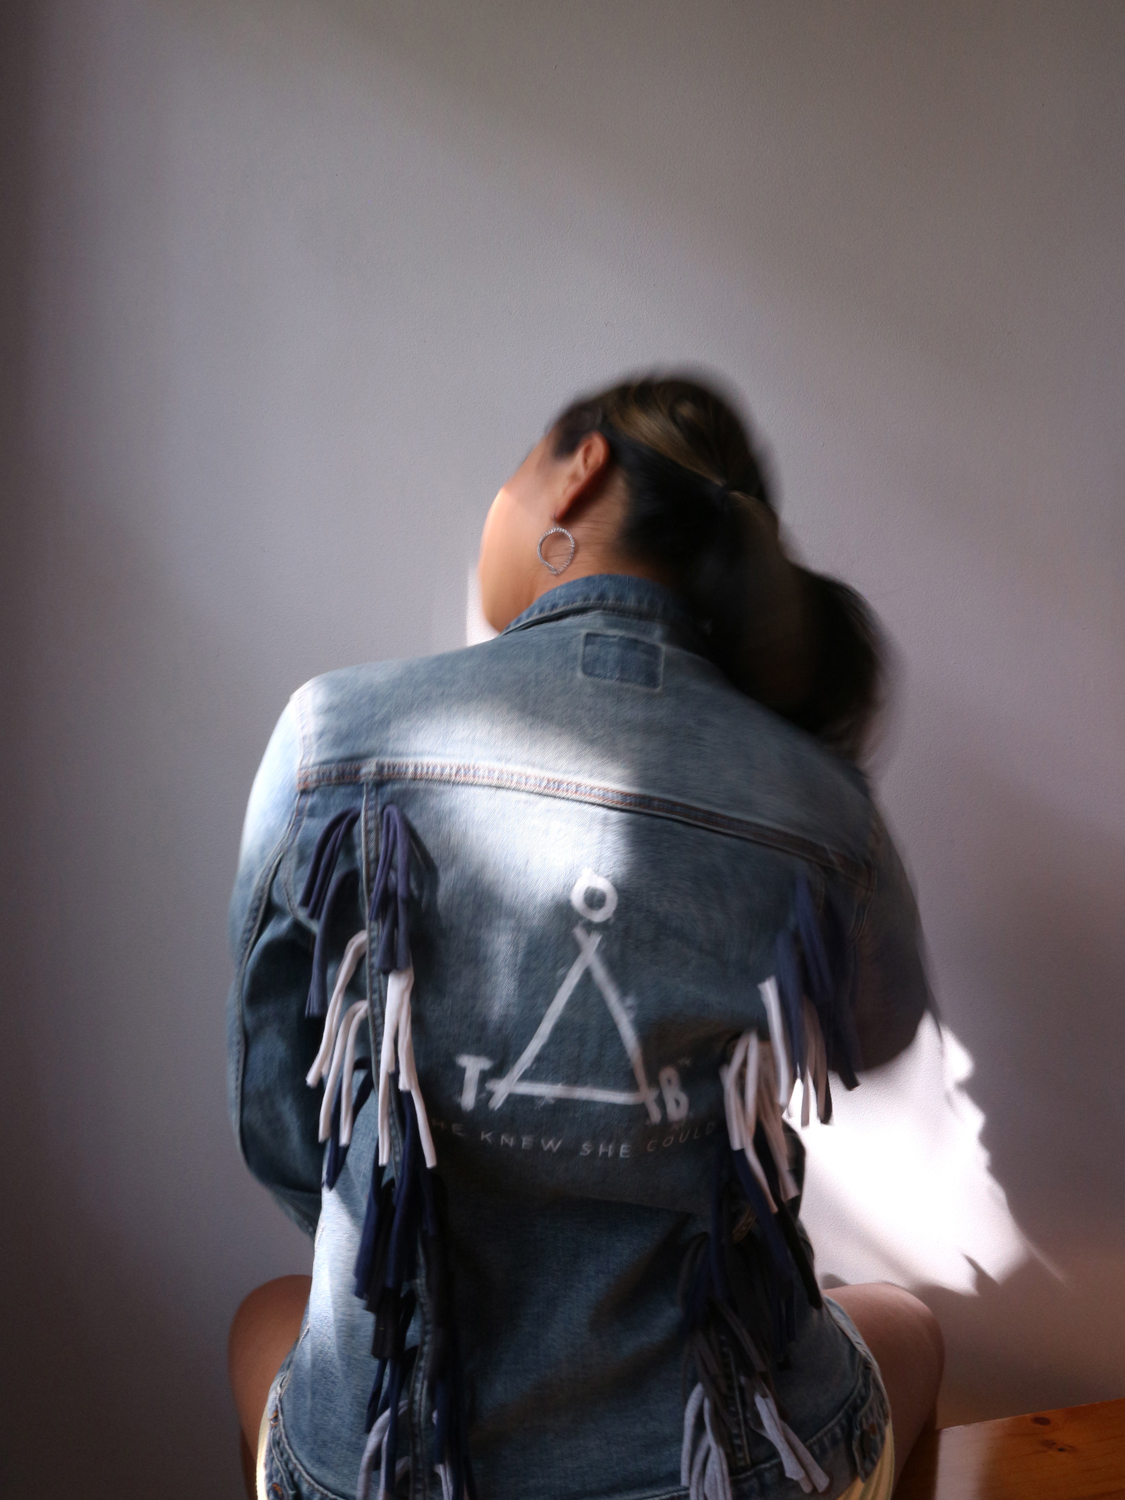 Jean Jacket by Courtney Chu: Support Campowerment and Give Her Camp